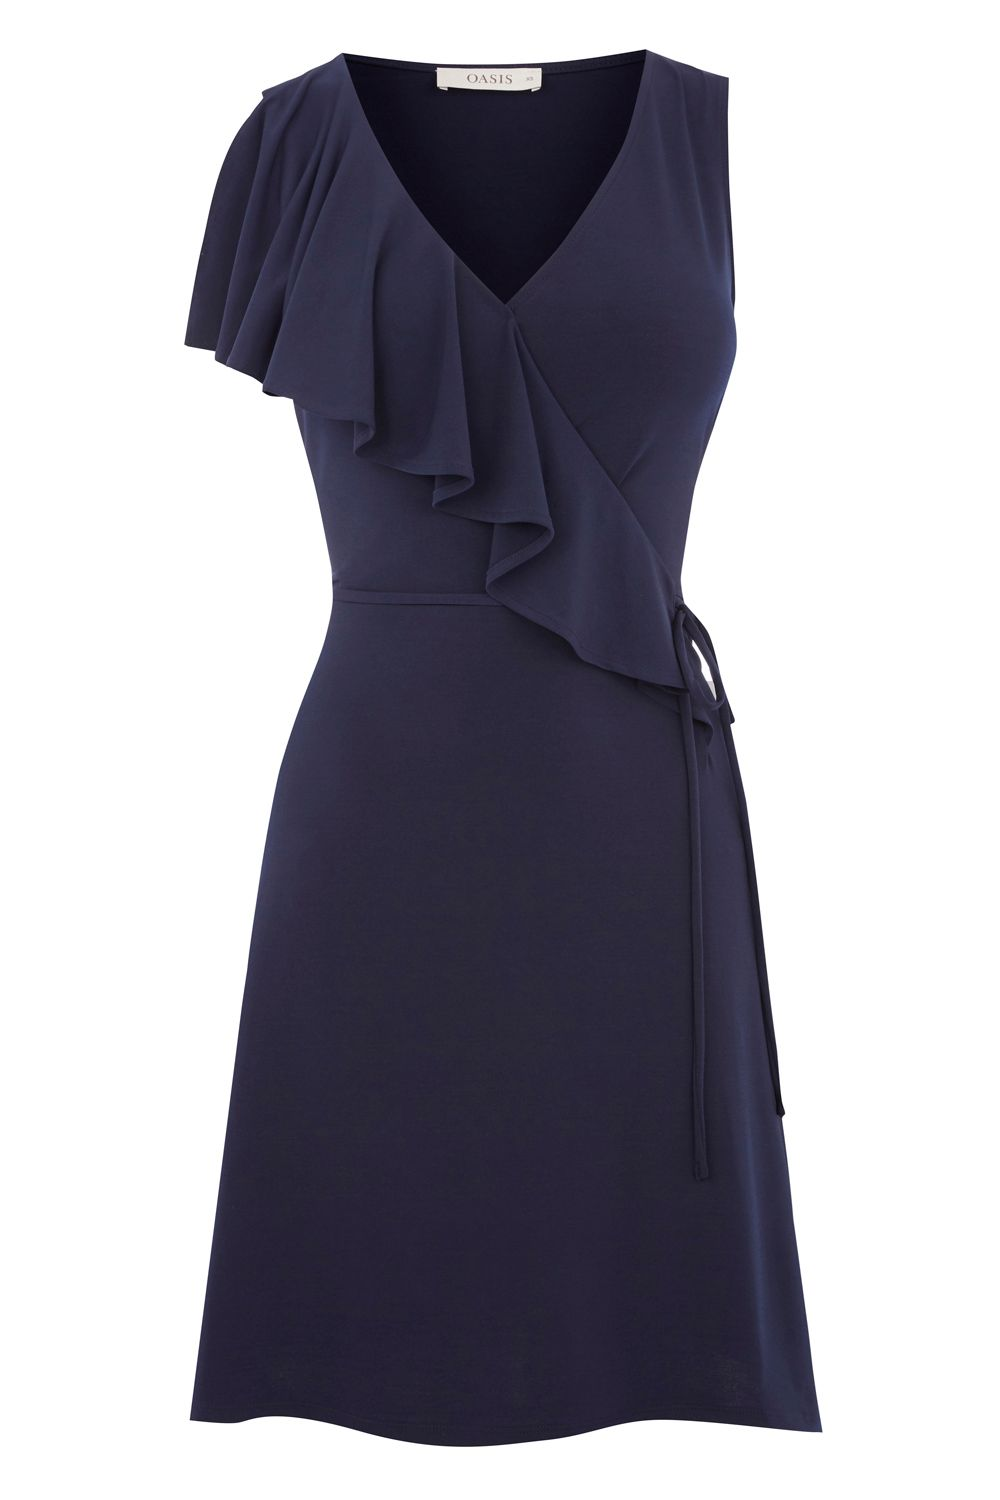 Oasis RUFFLE WRAP DRESS, Blue